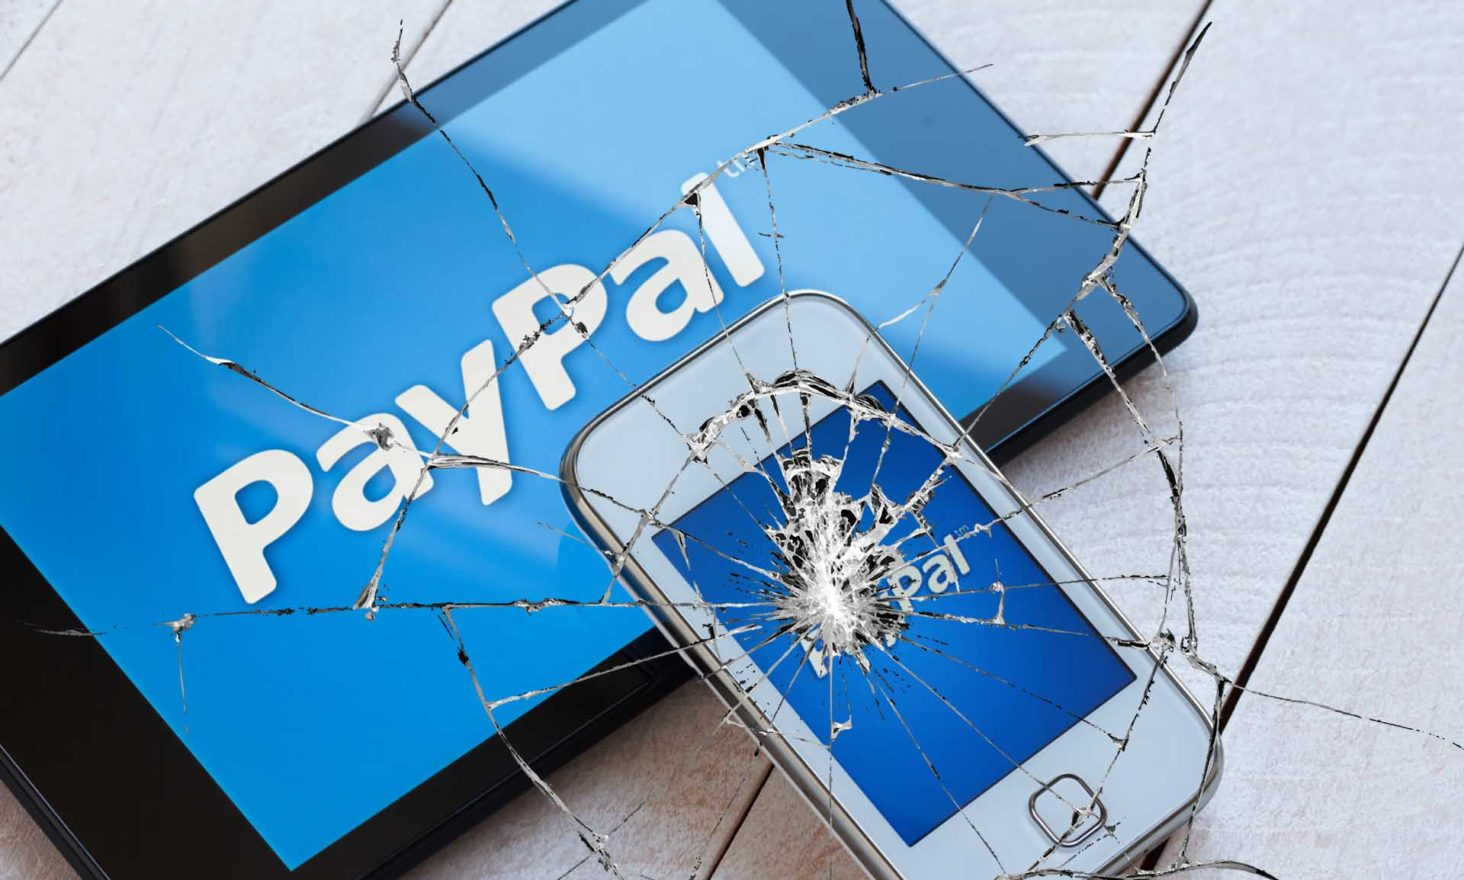 Kowala CEO: 4 Obstacles Crypto Must Overcome to Beat PayPal